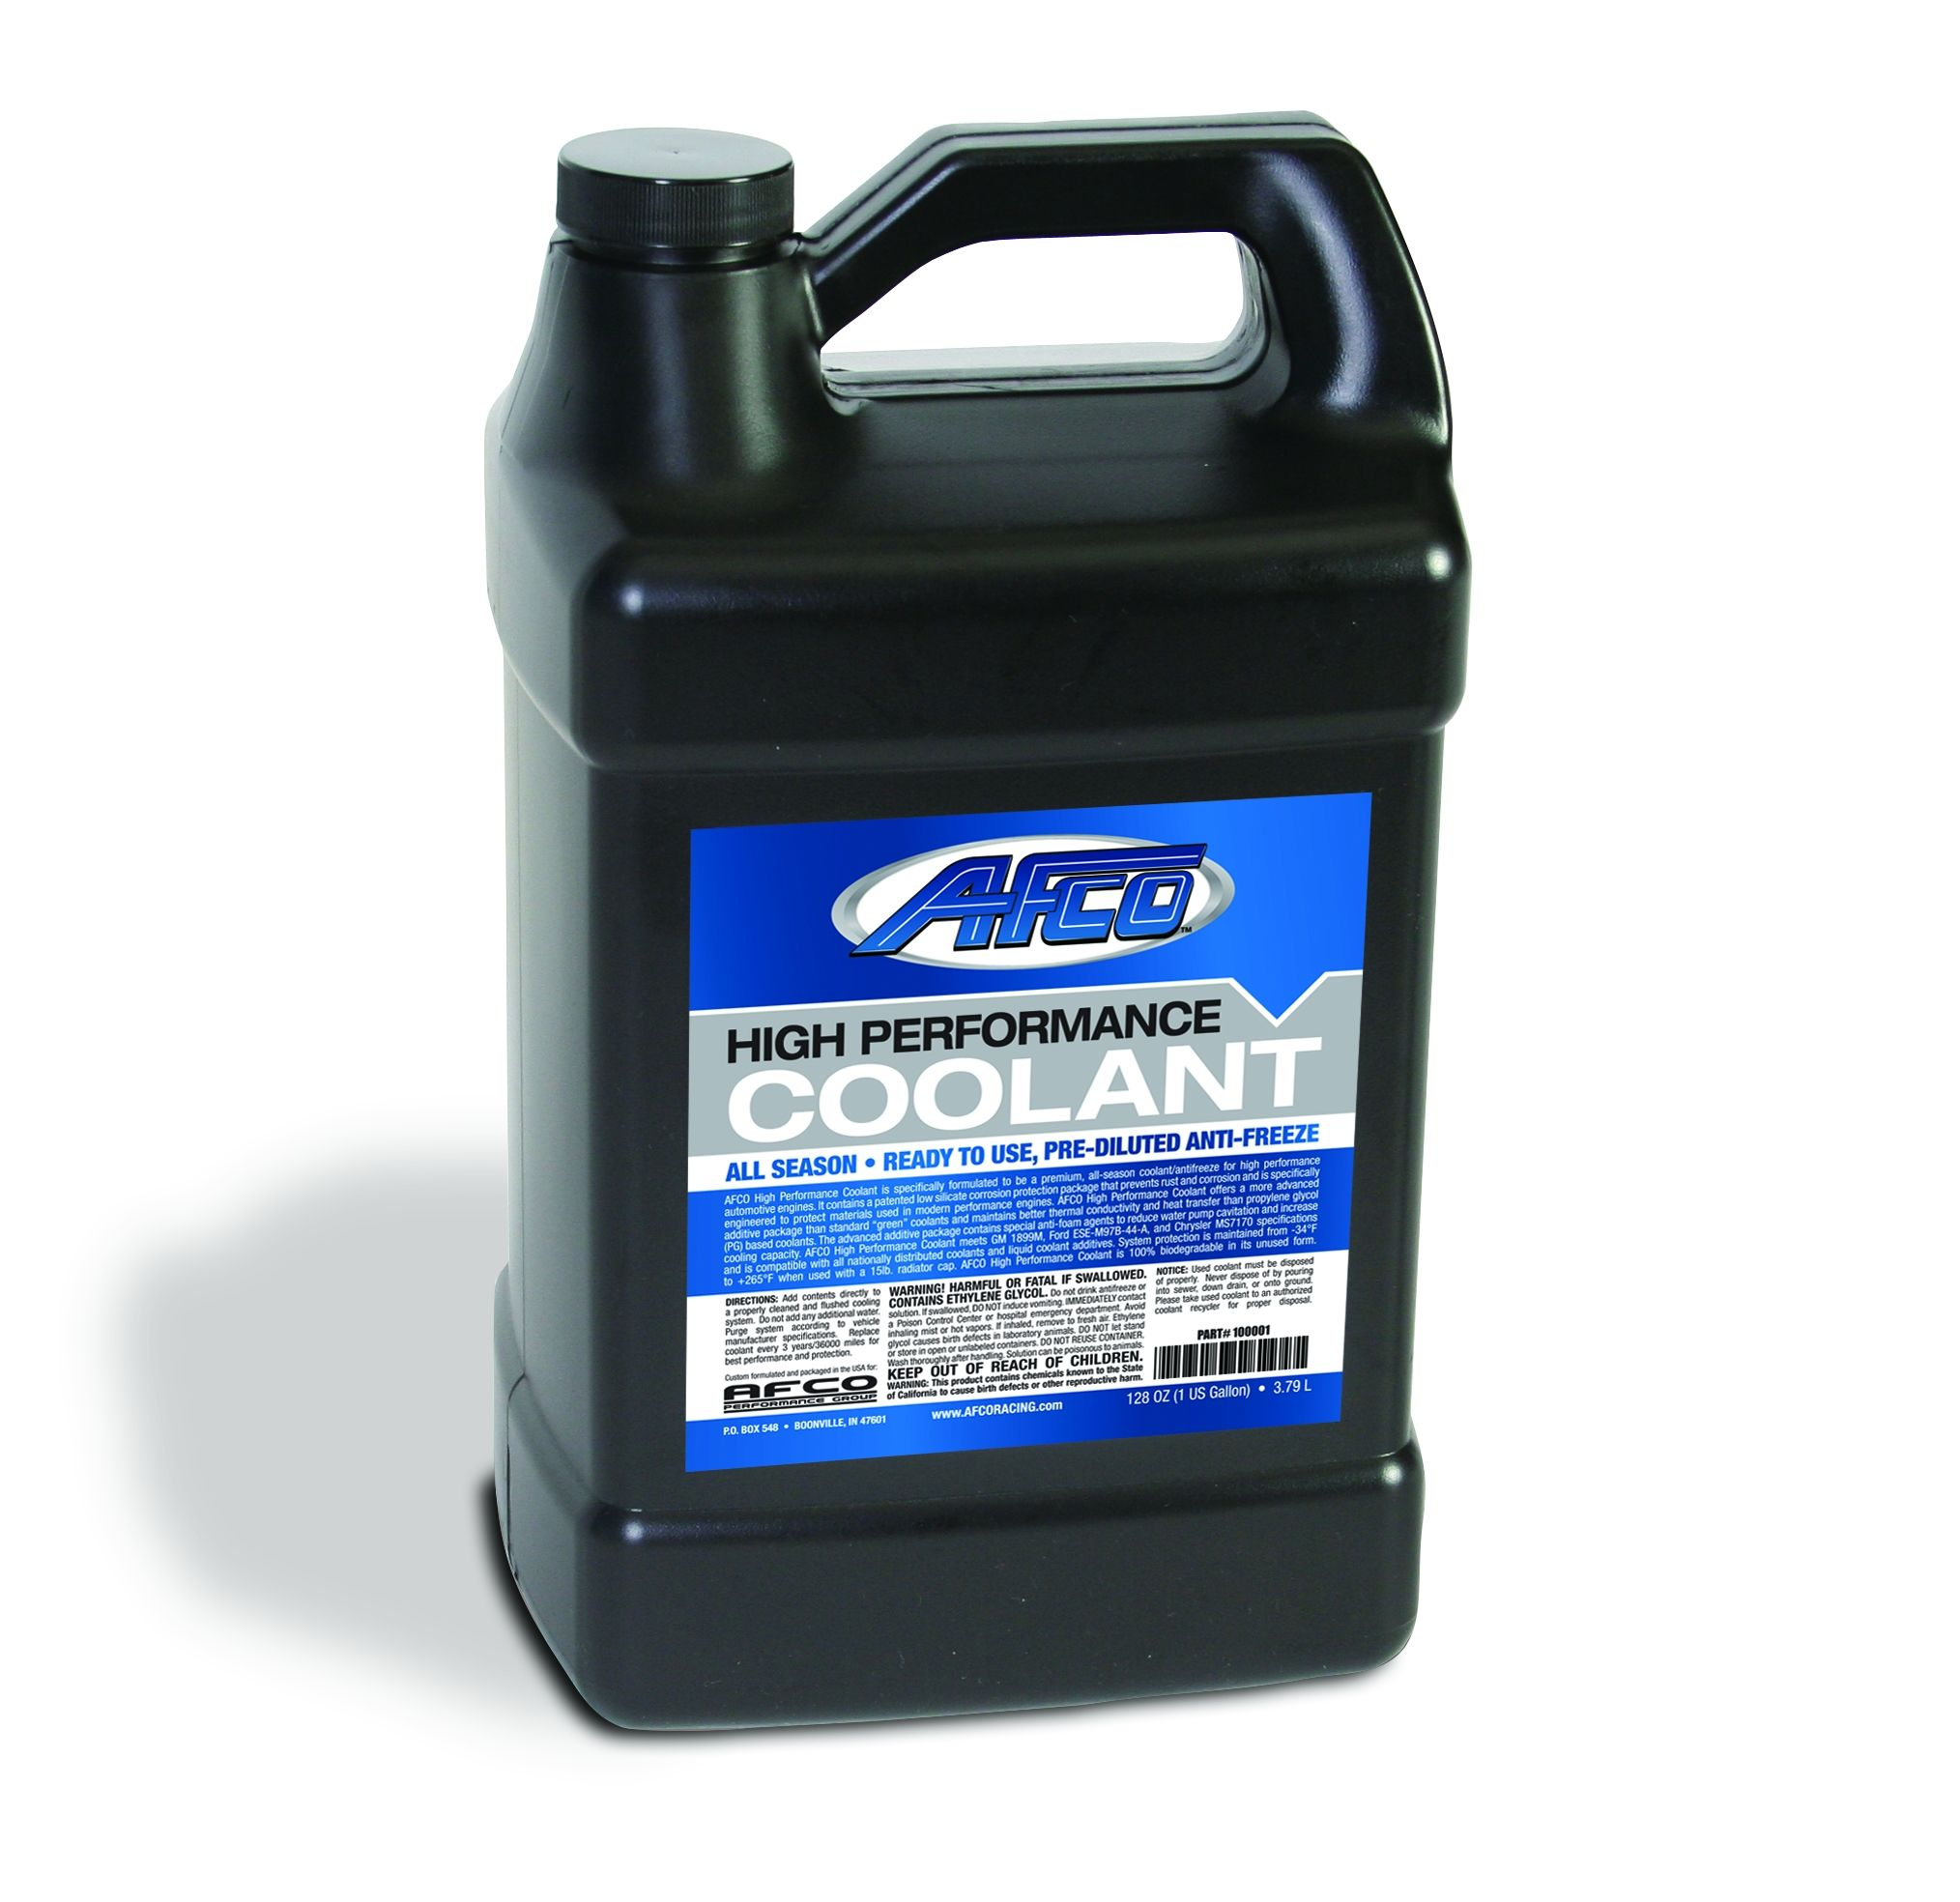 High Performance Coolant  Non-Propylene Glycol  Premixed  1 Gallon